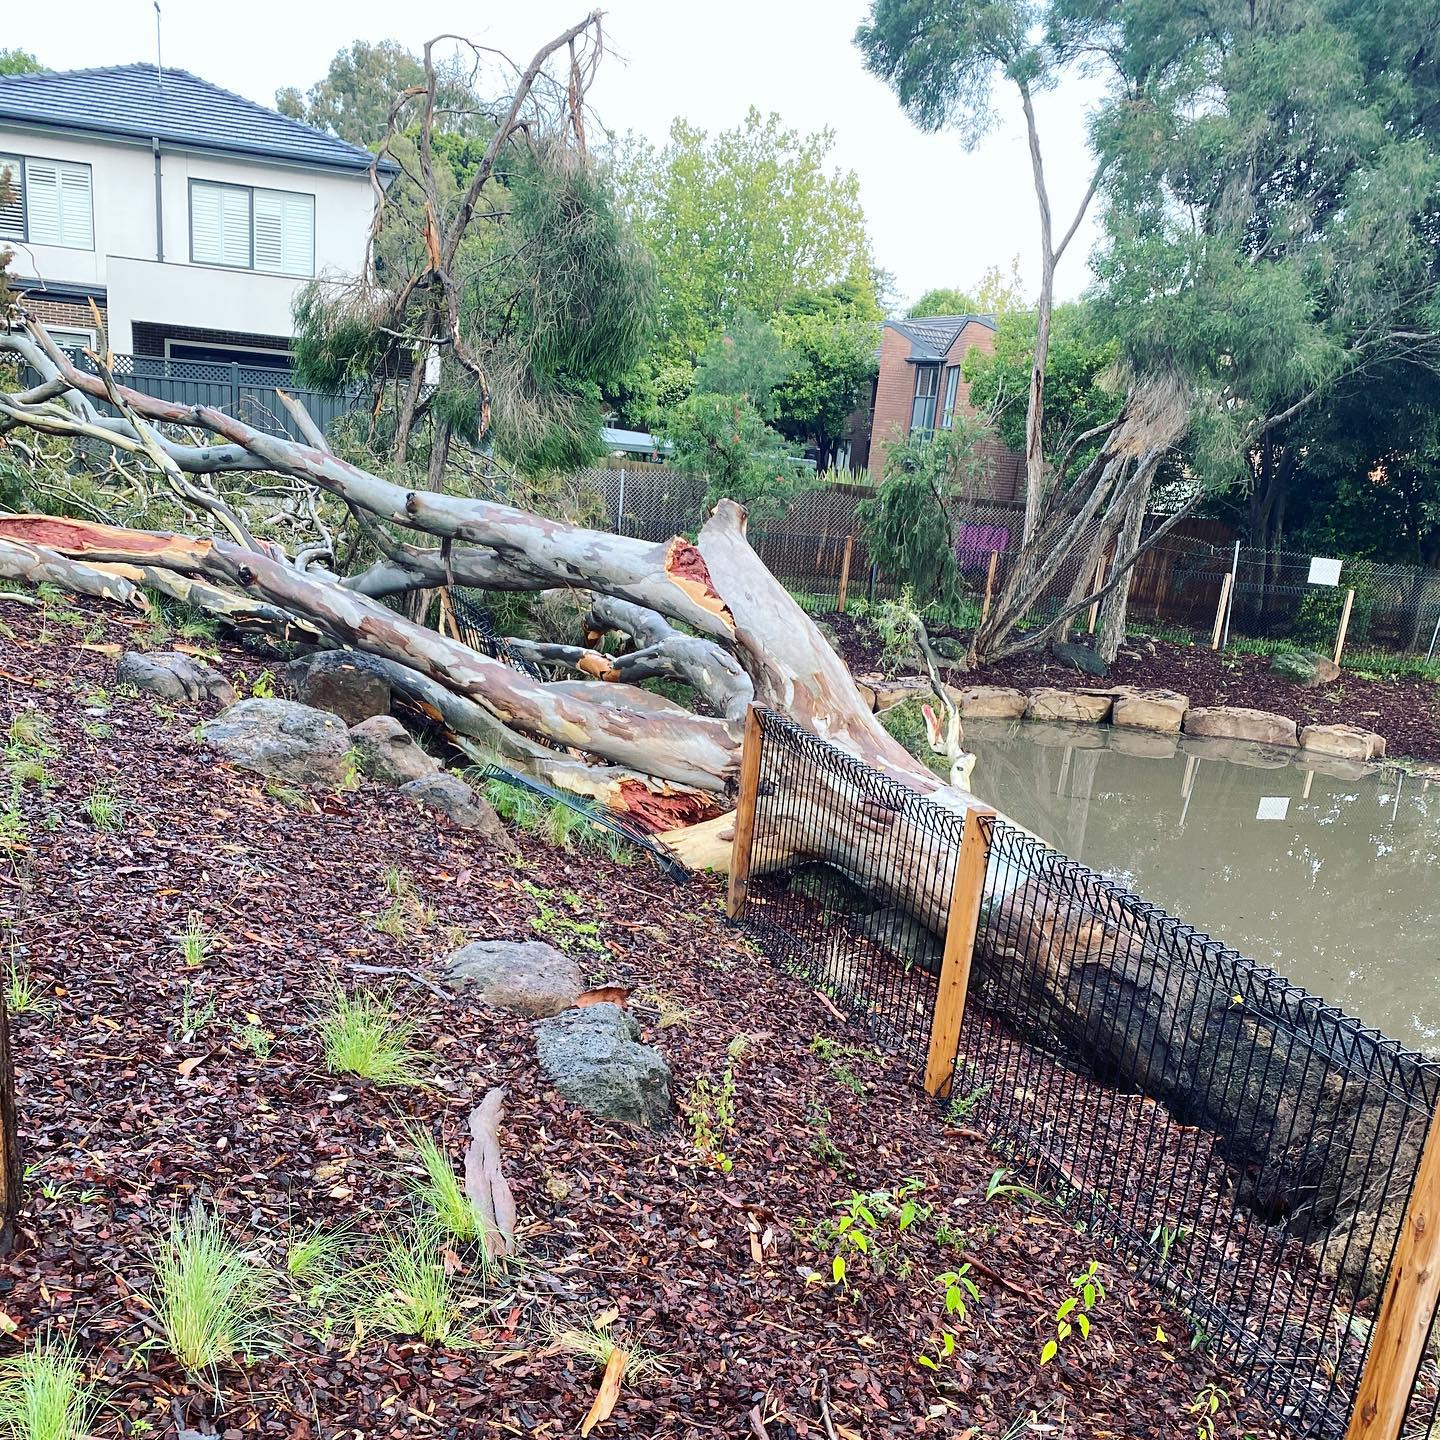 A fallen tree truck becomes new habitat by the urban wetlands of Balwyn Community Centre